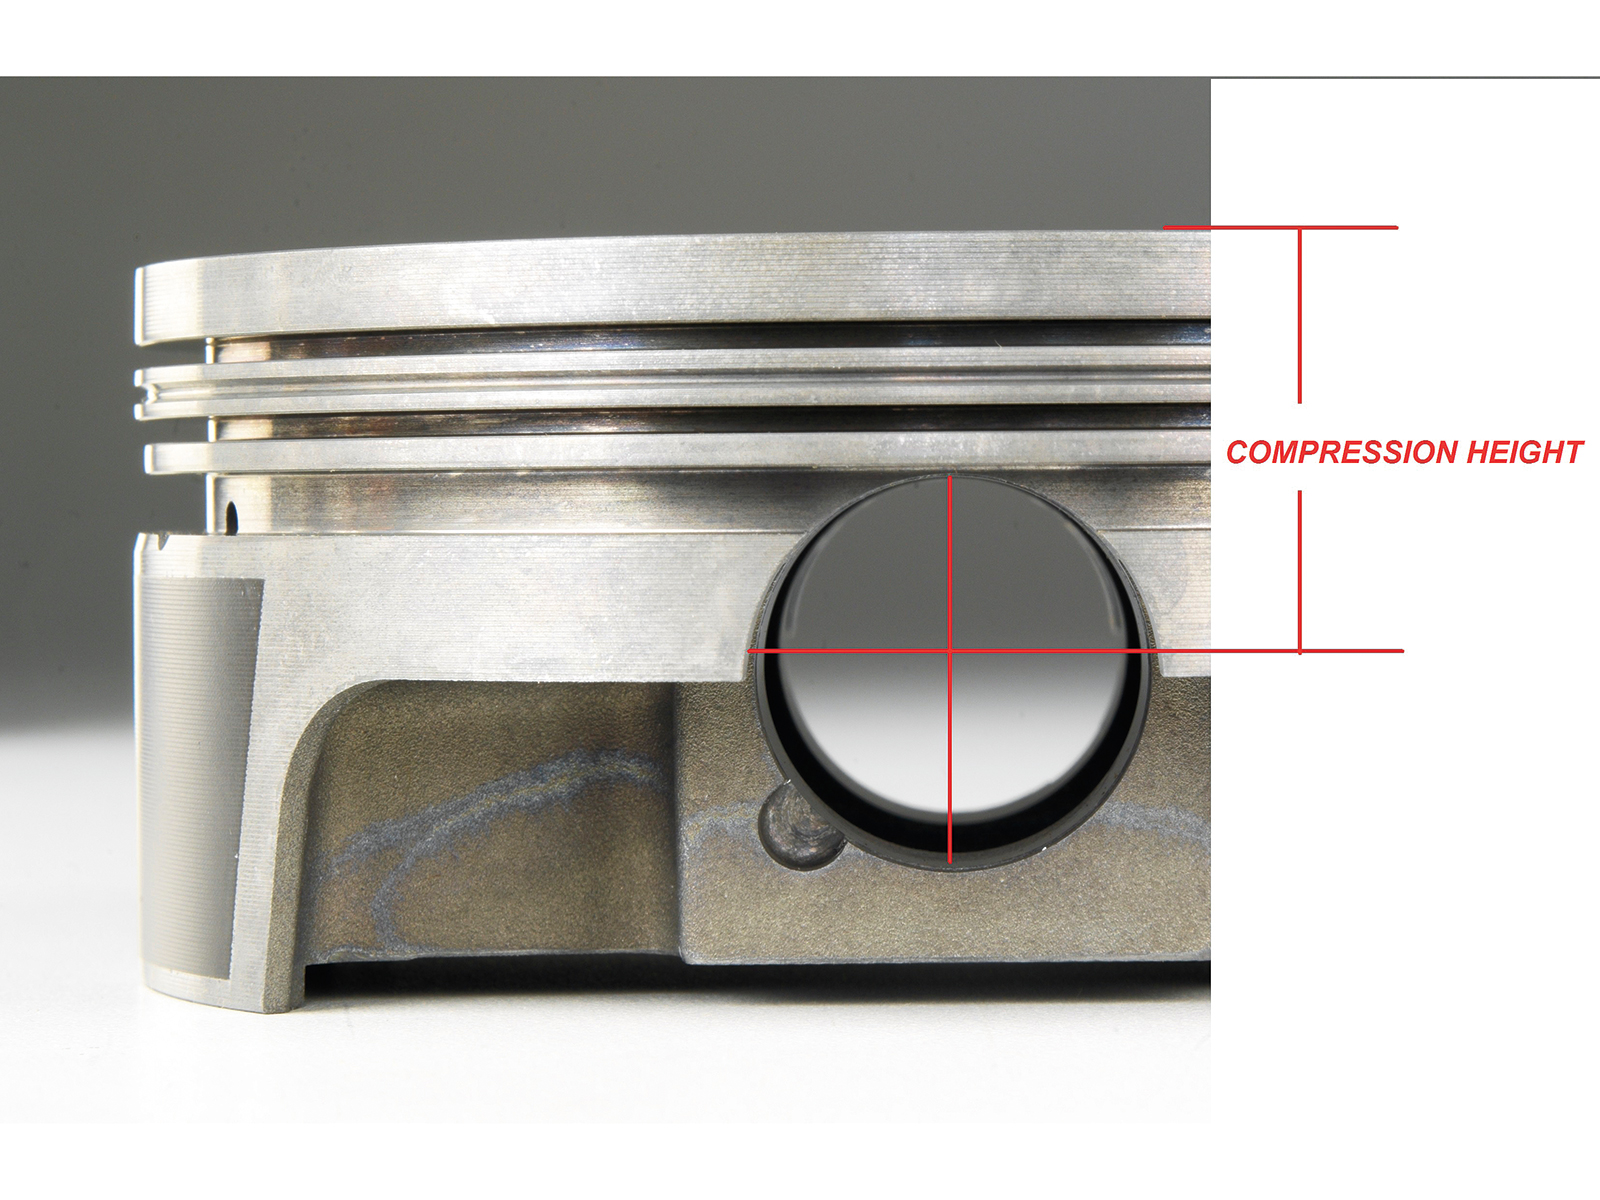 "Before selecting your pistons, you will have to know the required compression height so you can get to the actual compression ratio for the engine. Compression height is the distance between the centerline of the wrist pin bore and the top of the piston. When using a flat top piston, this can be simple math. But, add valve notches or a ""pop up"" dome, and now you need to do some math. The dome volume is comprised of the dome (material above the piston's deck), minus the valve notches. This final number will either be a negative of positive. If the volume of the dome is greater than the volume of the notches (typical), then you have a positive dome height."